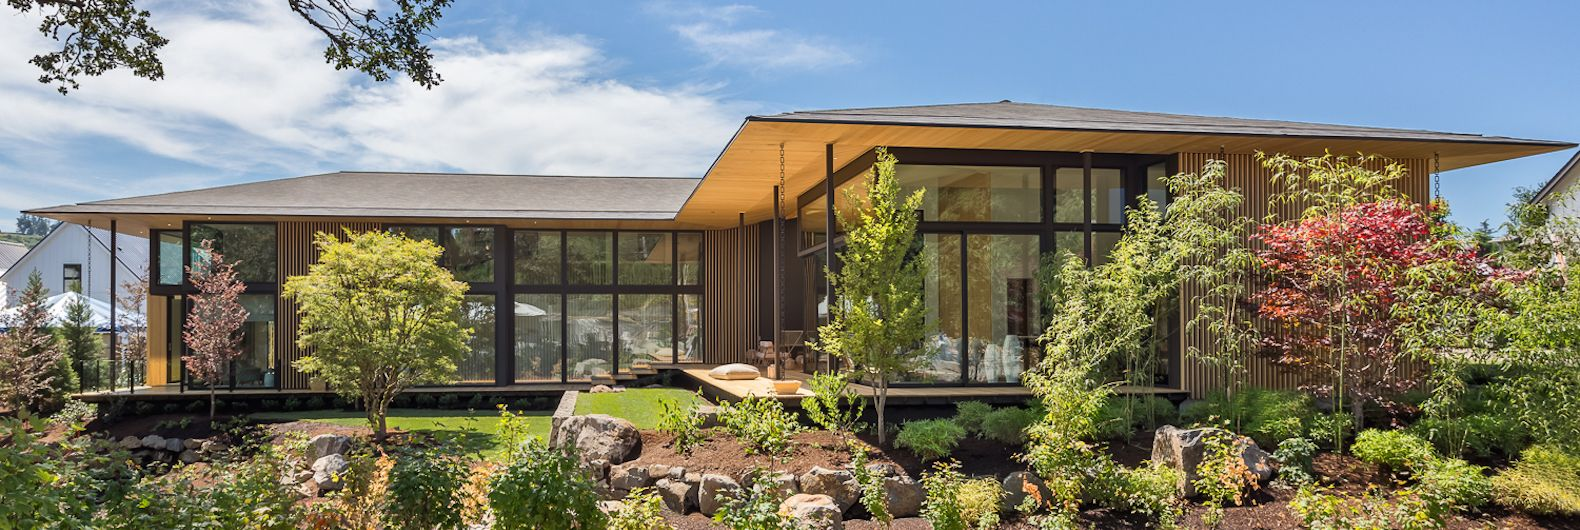 Kengo kuma just unveiled his first us home in portland